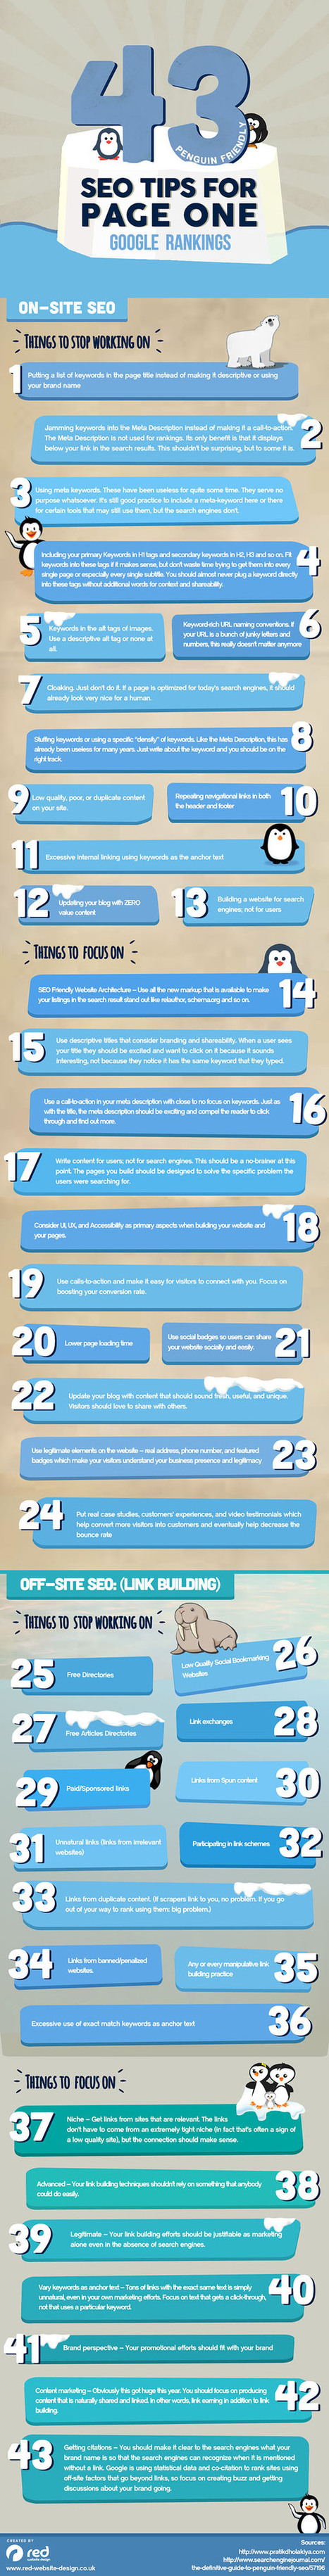 43 Penguin Friendly SEO Tips for Page One Google Rankings | Marketing | Scoop.it